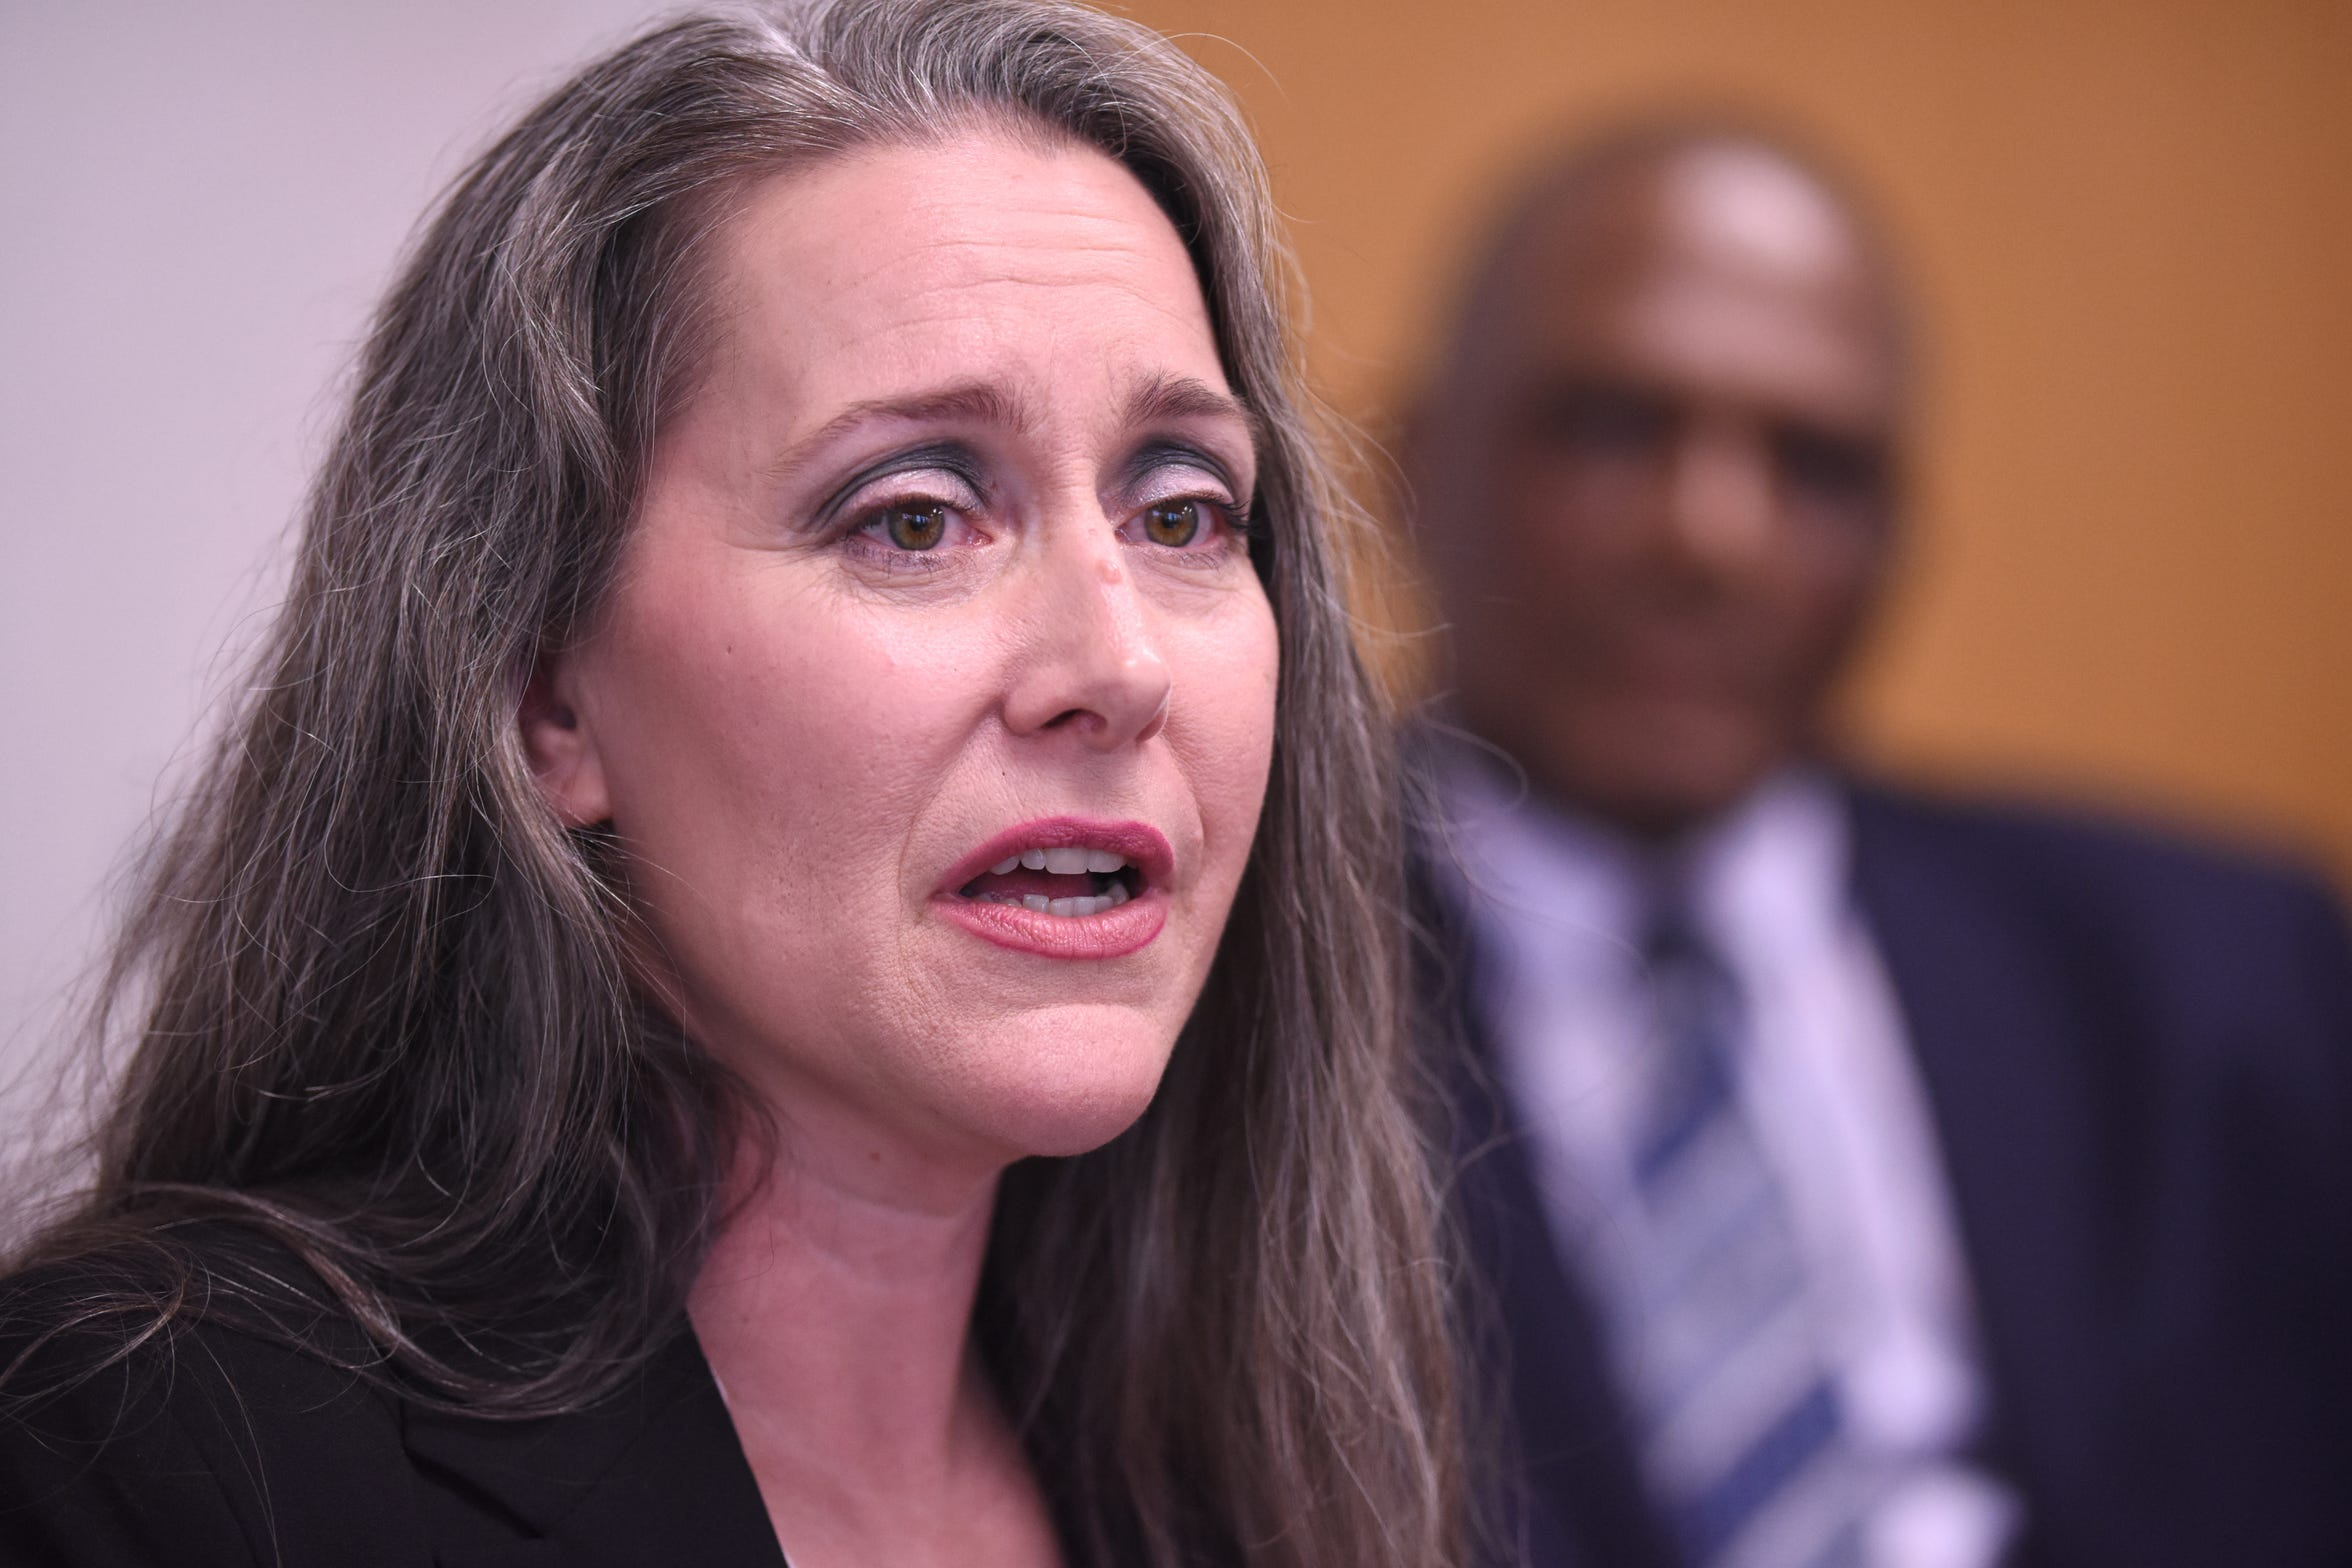 Melissa Chapman spent more than three decades behind bars for her role in the 1987 killing of Michael Gaines.